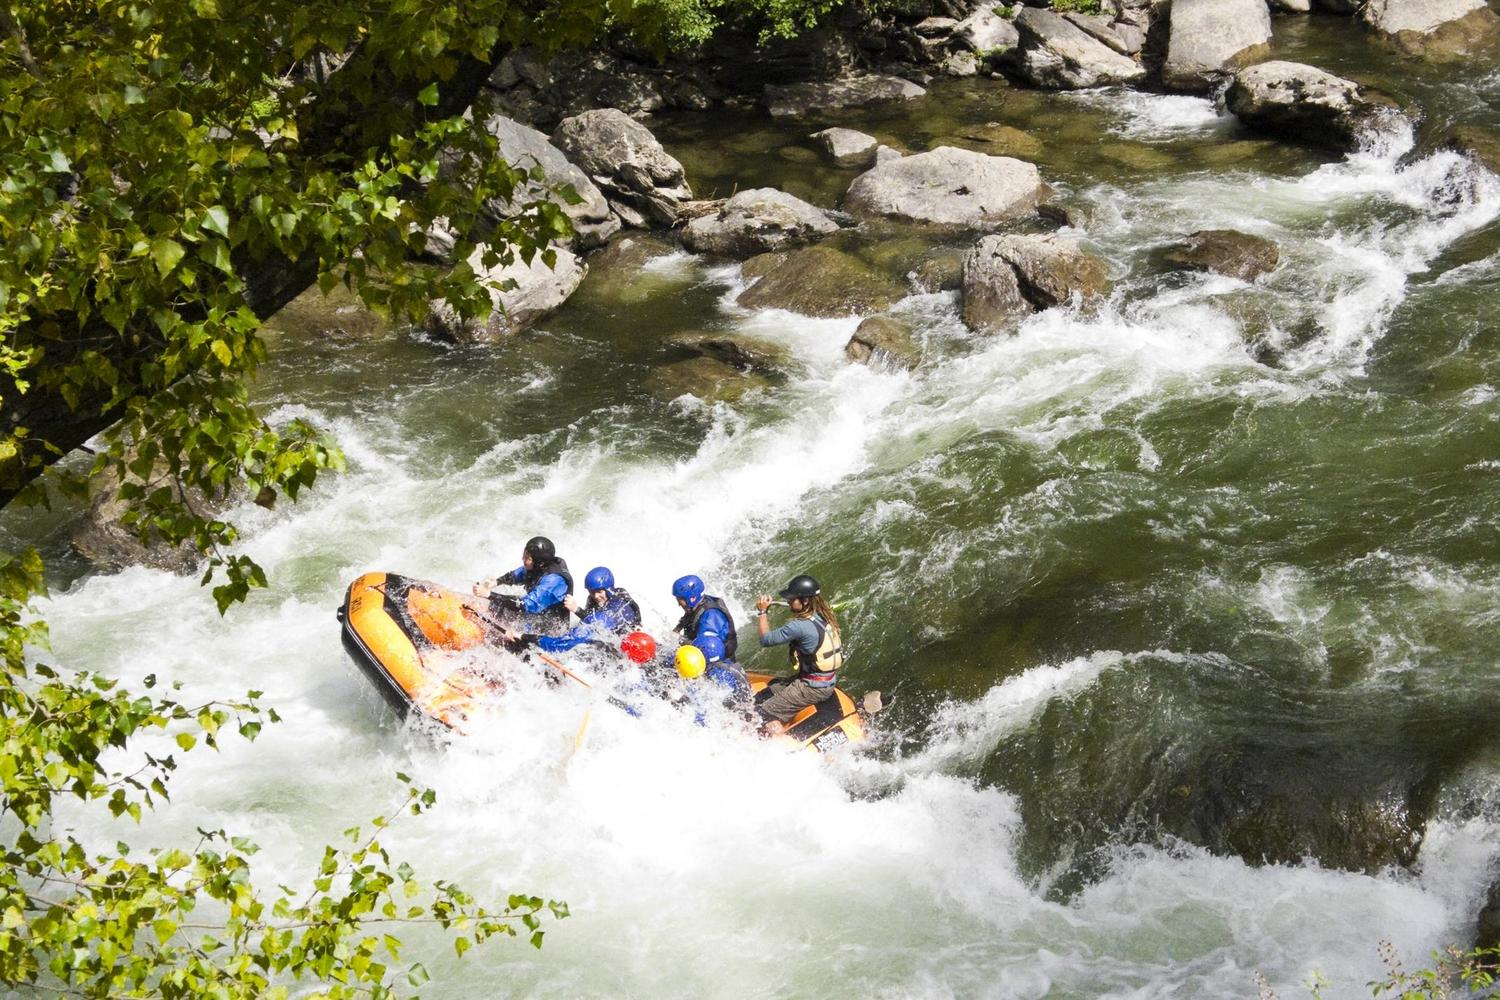 Grade III rapids on the Pallars Sobira river